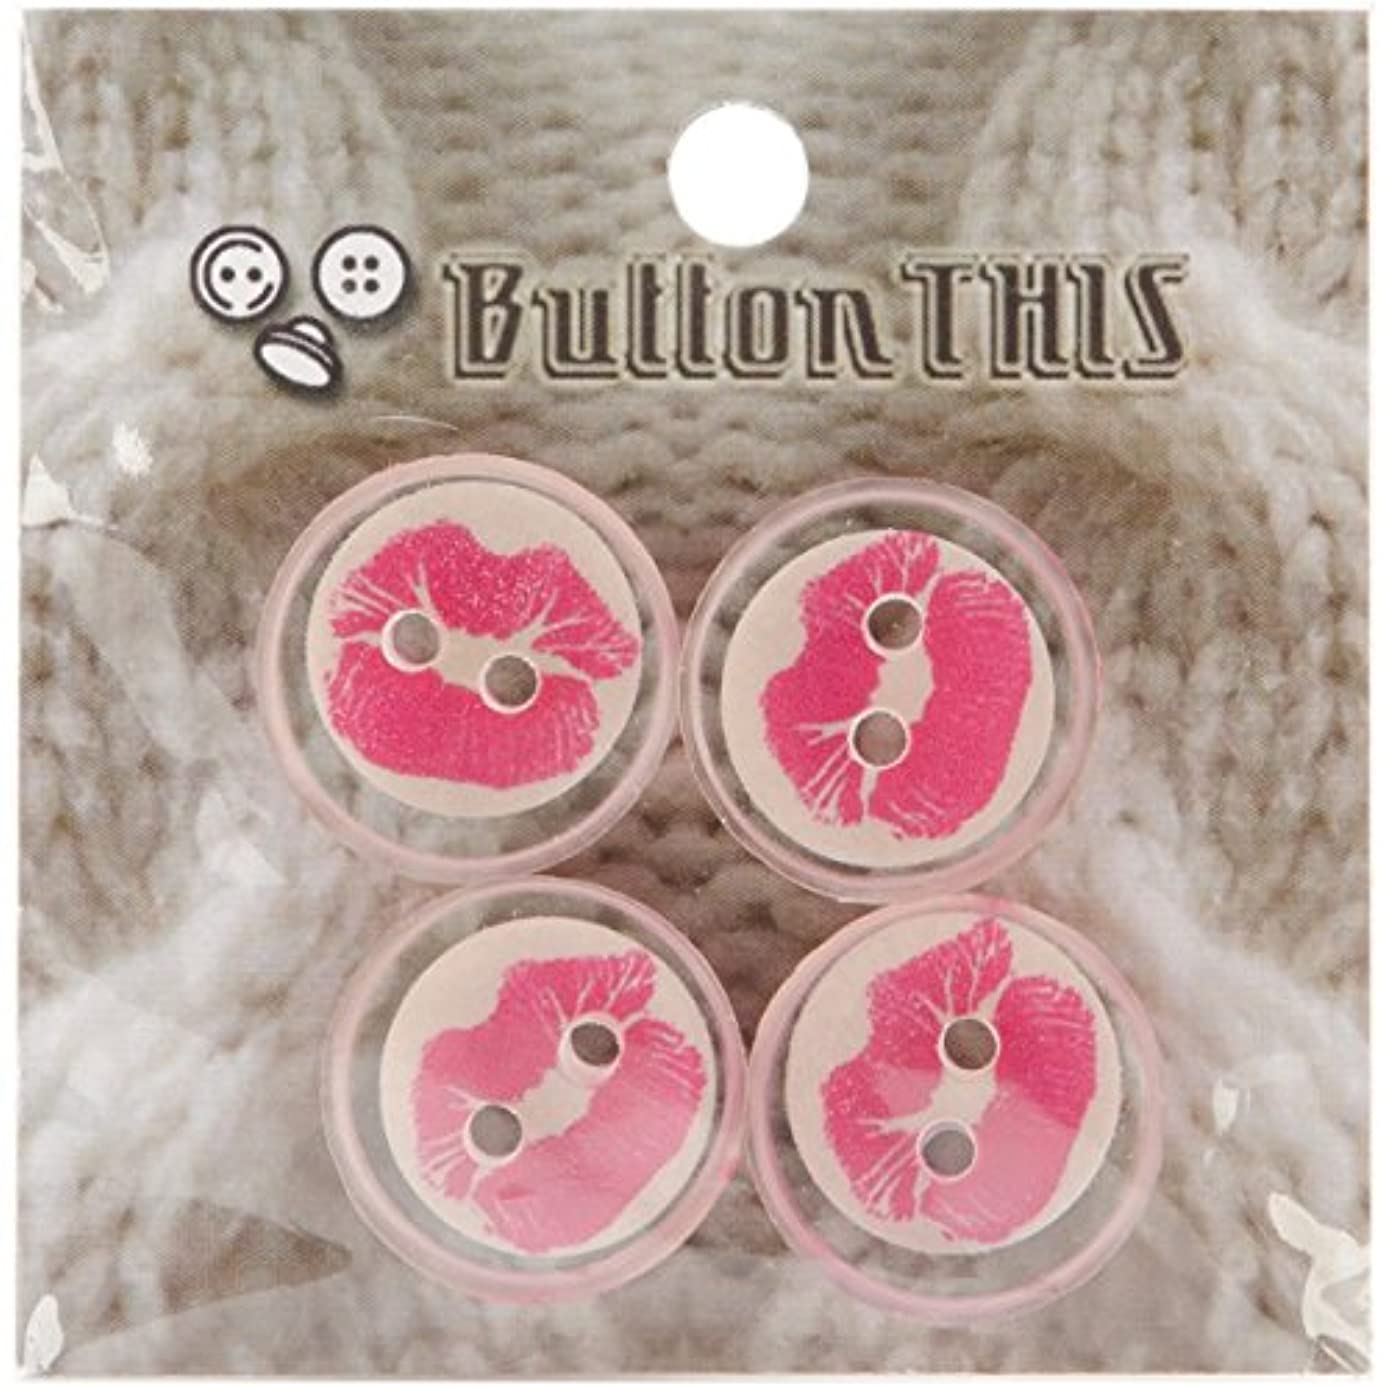 ButtonTHIS Novelty Buttons, 1-Inch, Pink Lips, 4-Pack